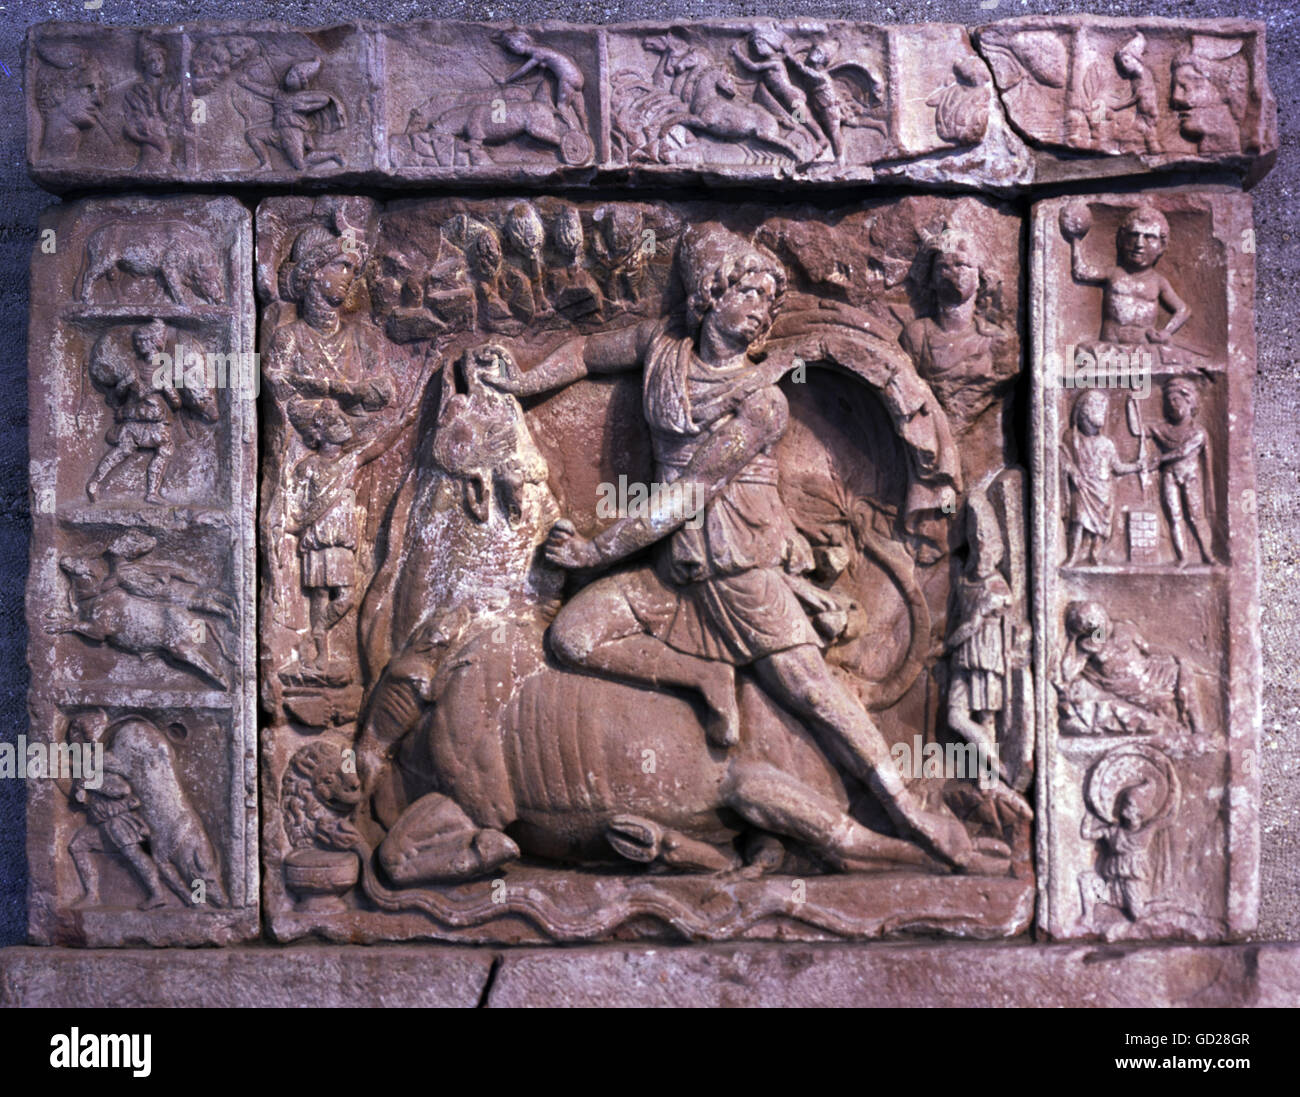 fine arts, ancient world, Roman Empire, sculpture, tauroctony, Mithras killing the bull, relief from Heidelberg, - Stock Image